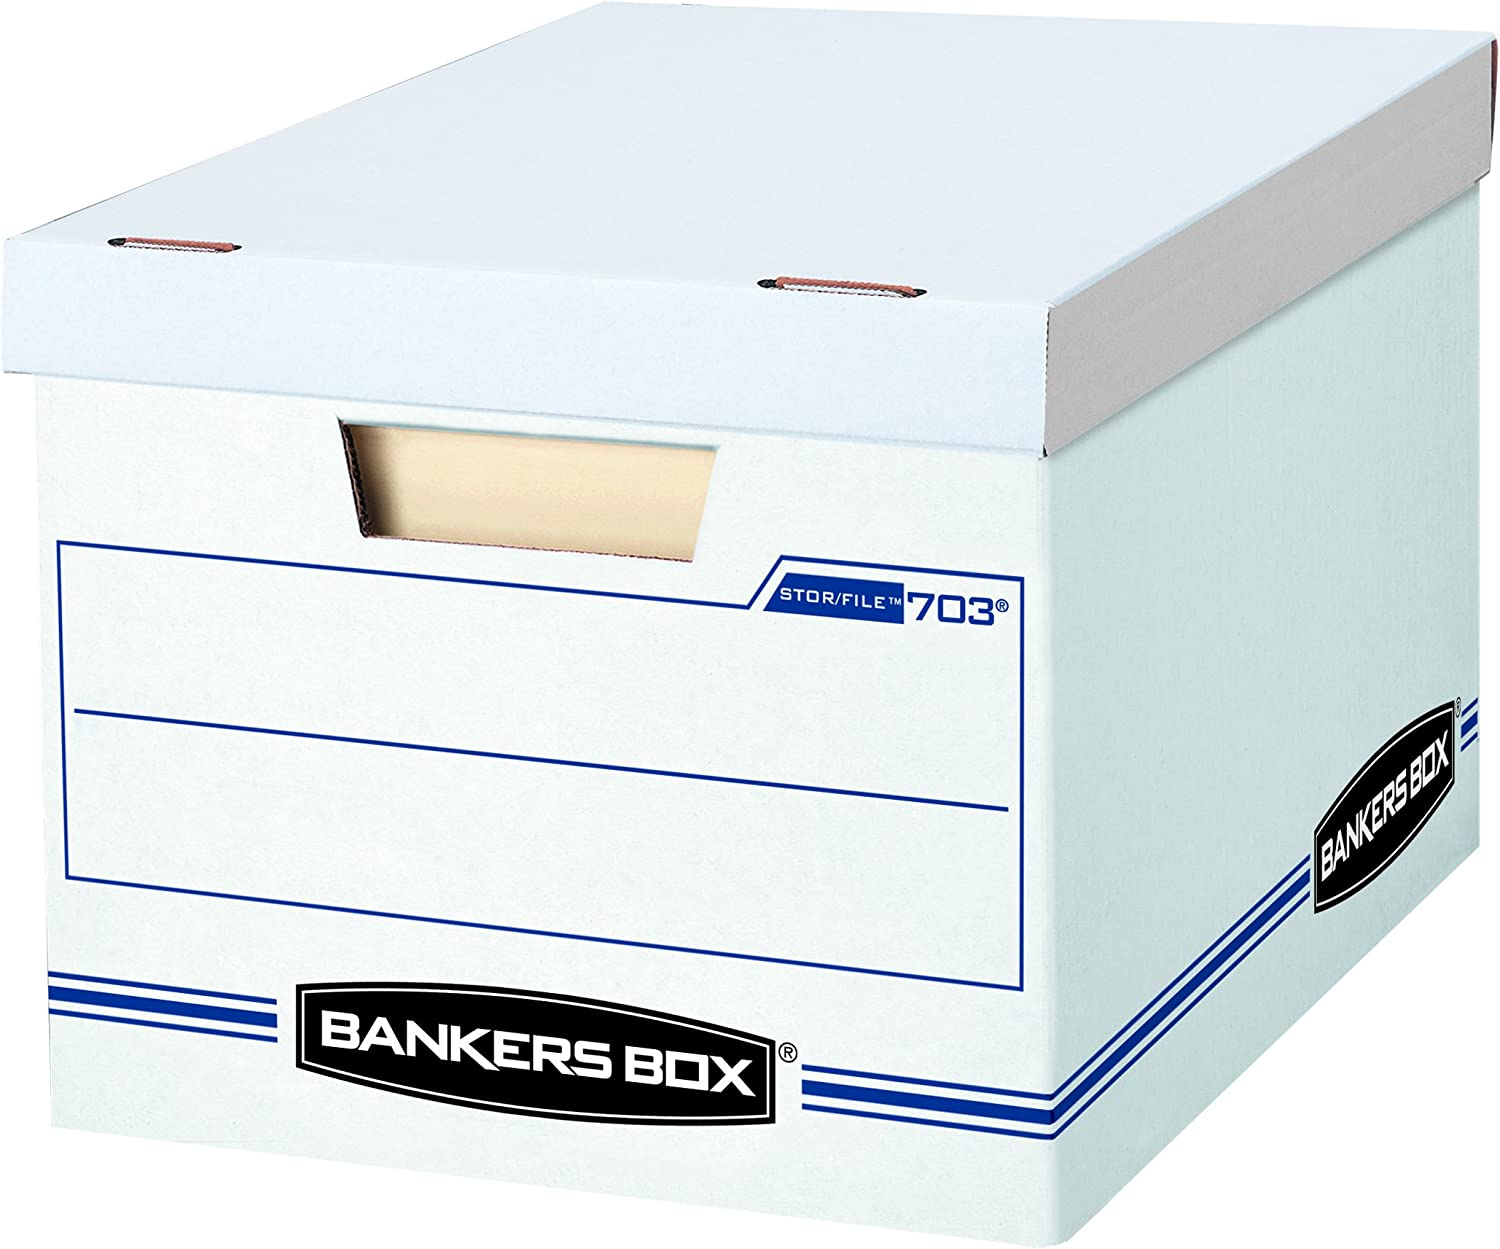 Letter//Legal 00703 12 x 10 x 15 Inches Bankers Box Storage Box with Lift-Off Lid White